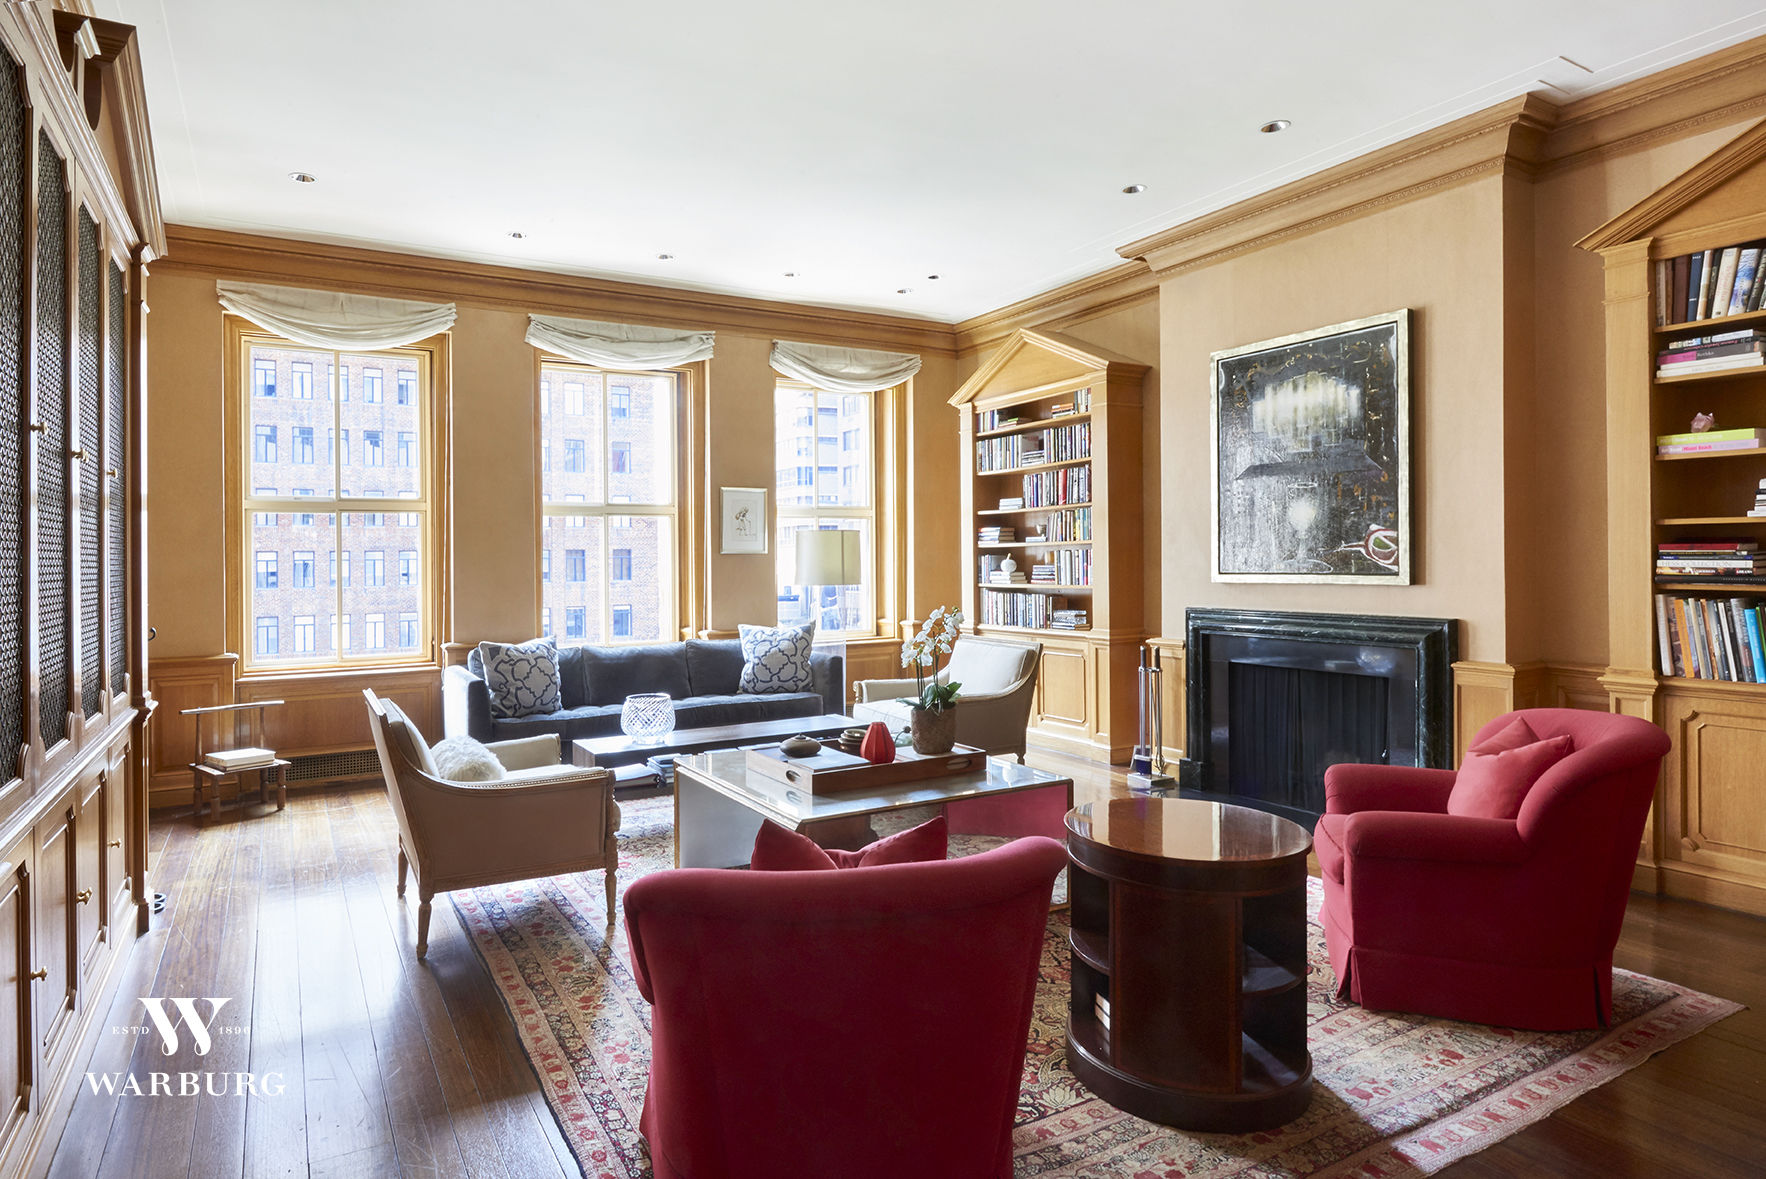 740 Park Avenue, Apt 8/9A Photo 3 - WR-3098393